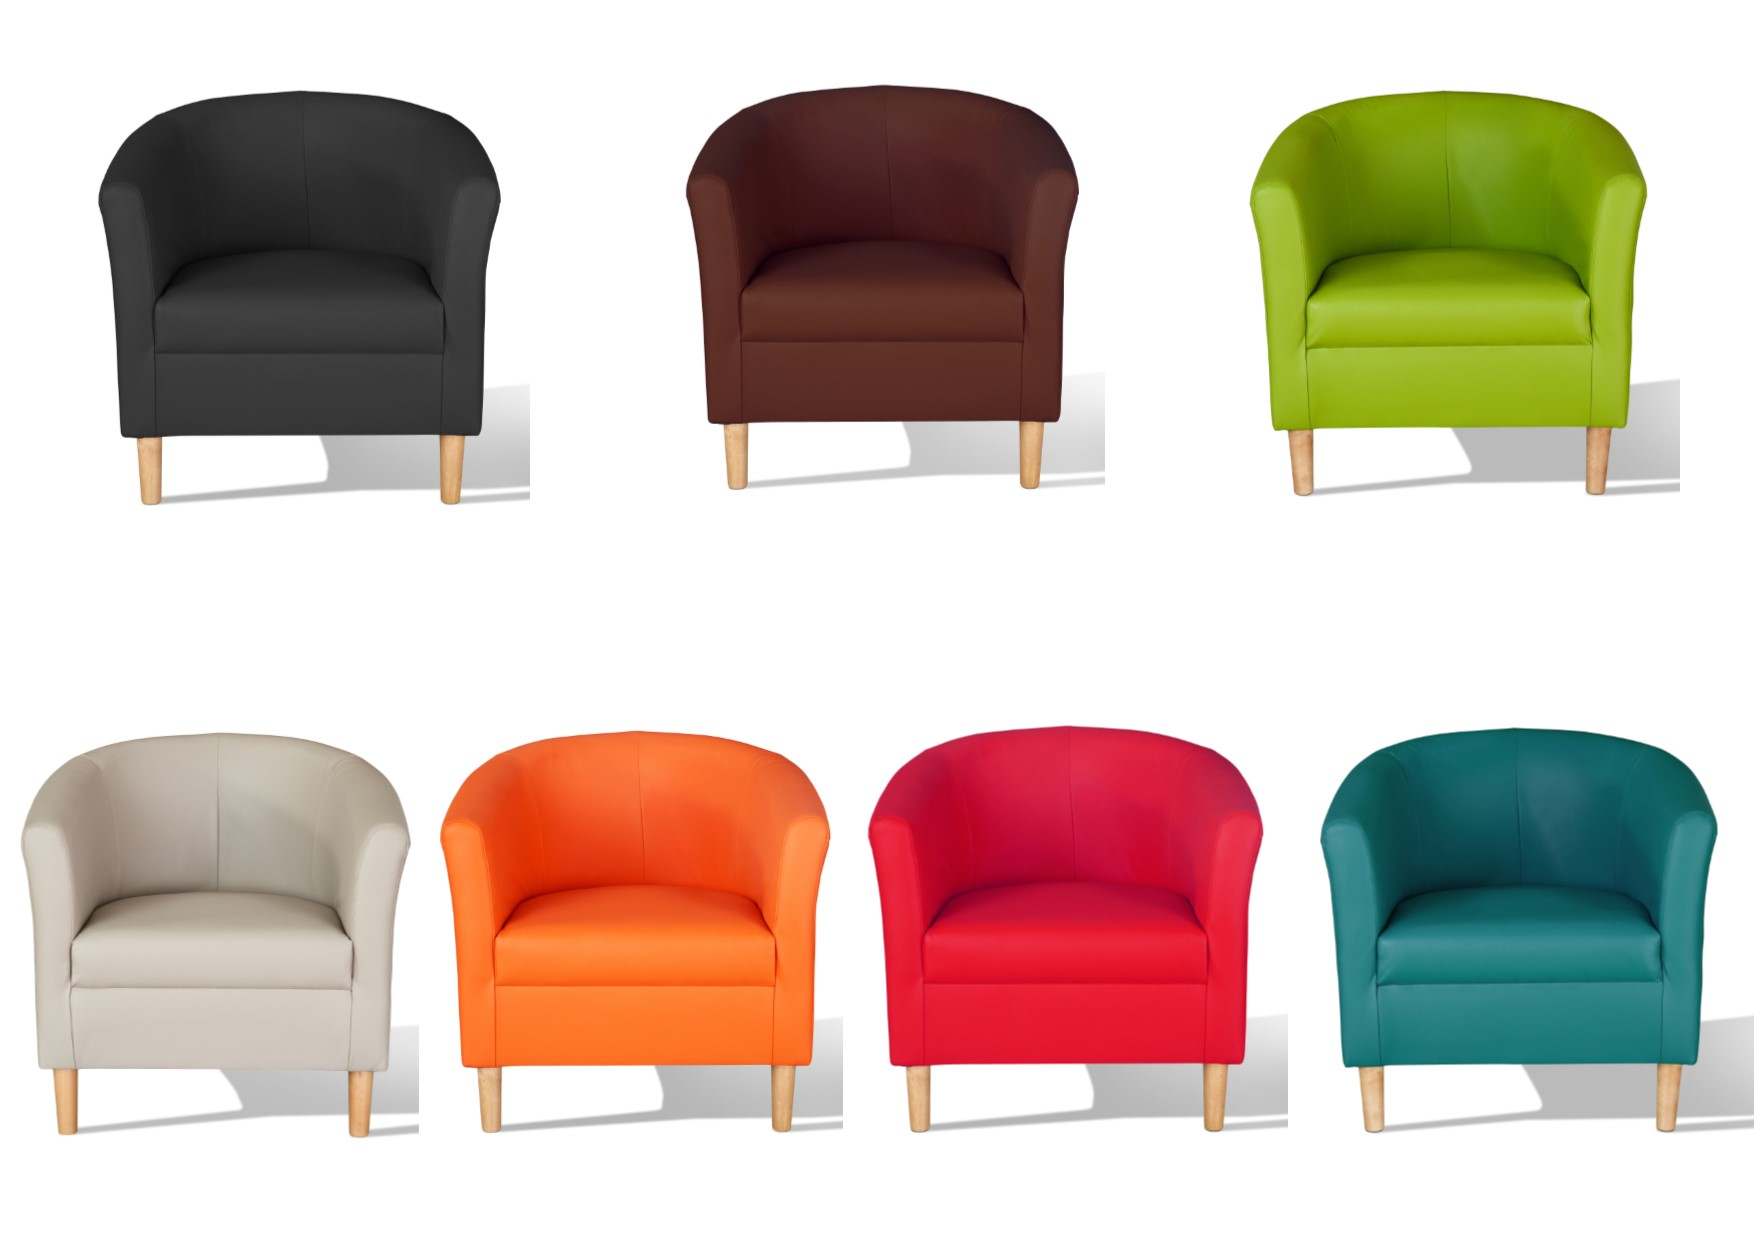 Tub Chairs Details About Hamony Faux Leather Tub Chairs Black Mocha Chestnut Red Teal Green